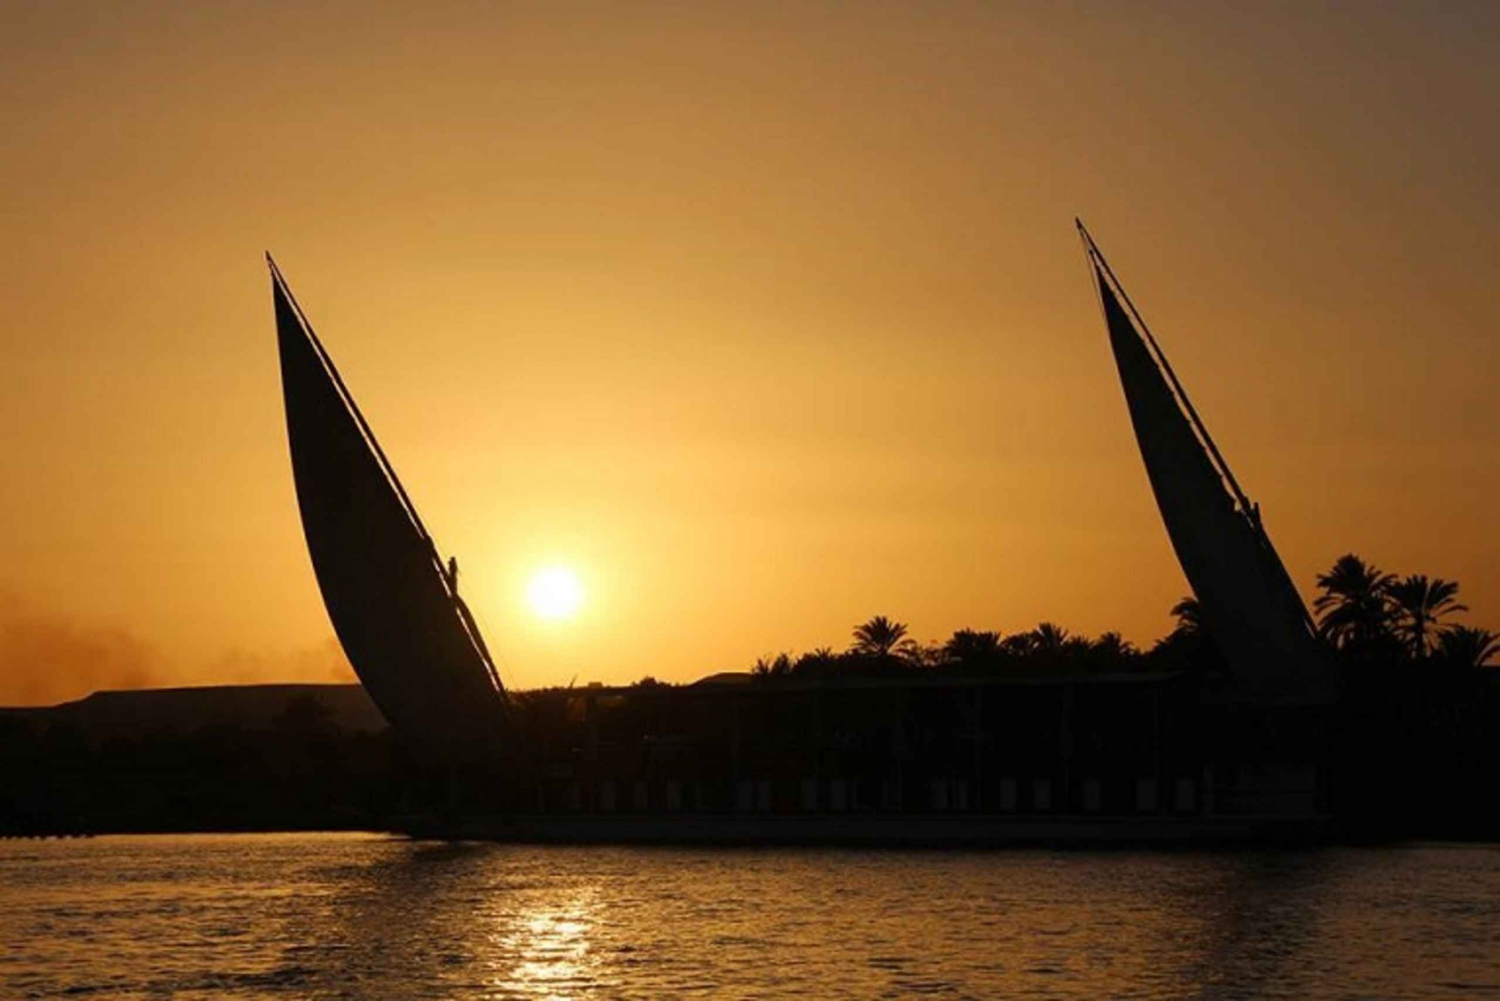 2-Hour Felucca Ride on the Nile